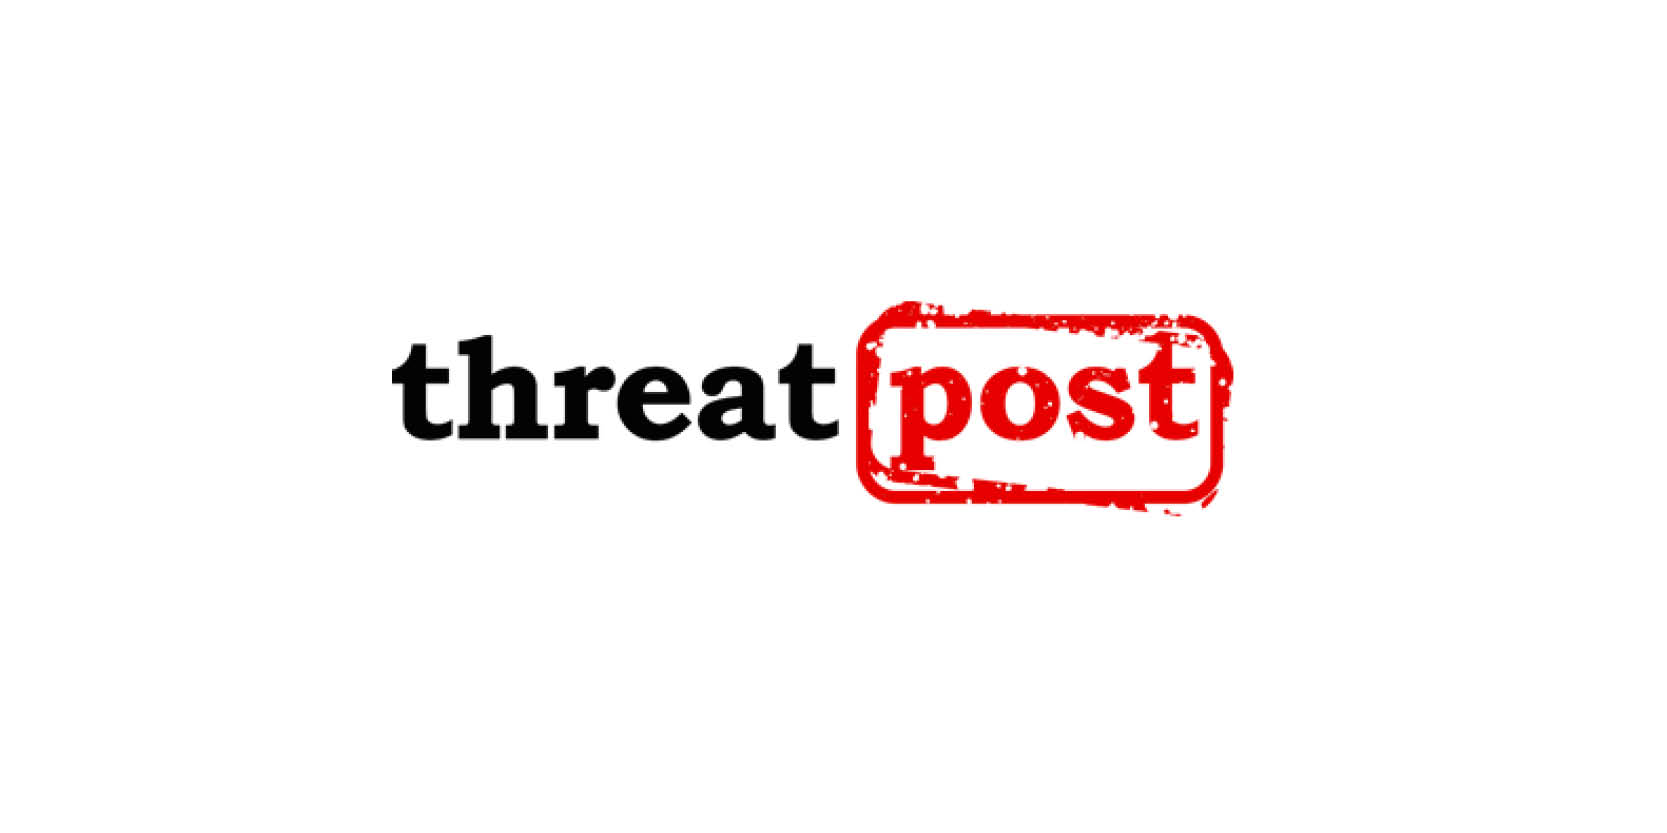 ThreatPost: CYBERCRIME HIT BUSINESSES HARDEST IN 2015, SAYS IC3 REPORT